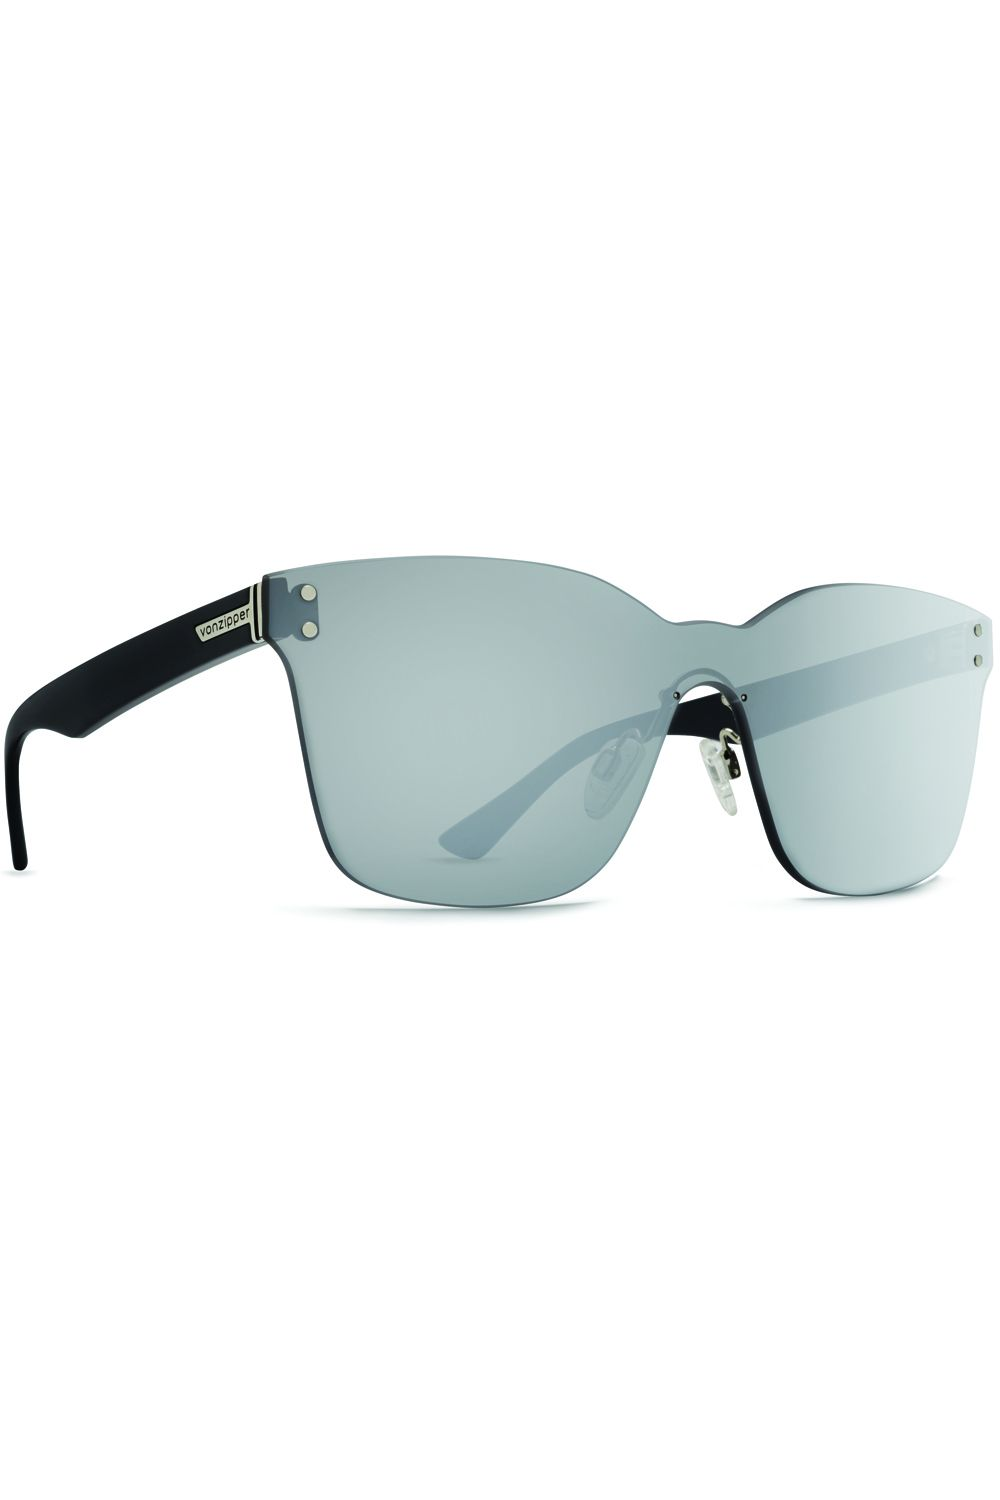 Oculos VonZipper ALT HOWL Black Gloss (arms) / Flash Chrome Silver